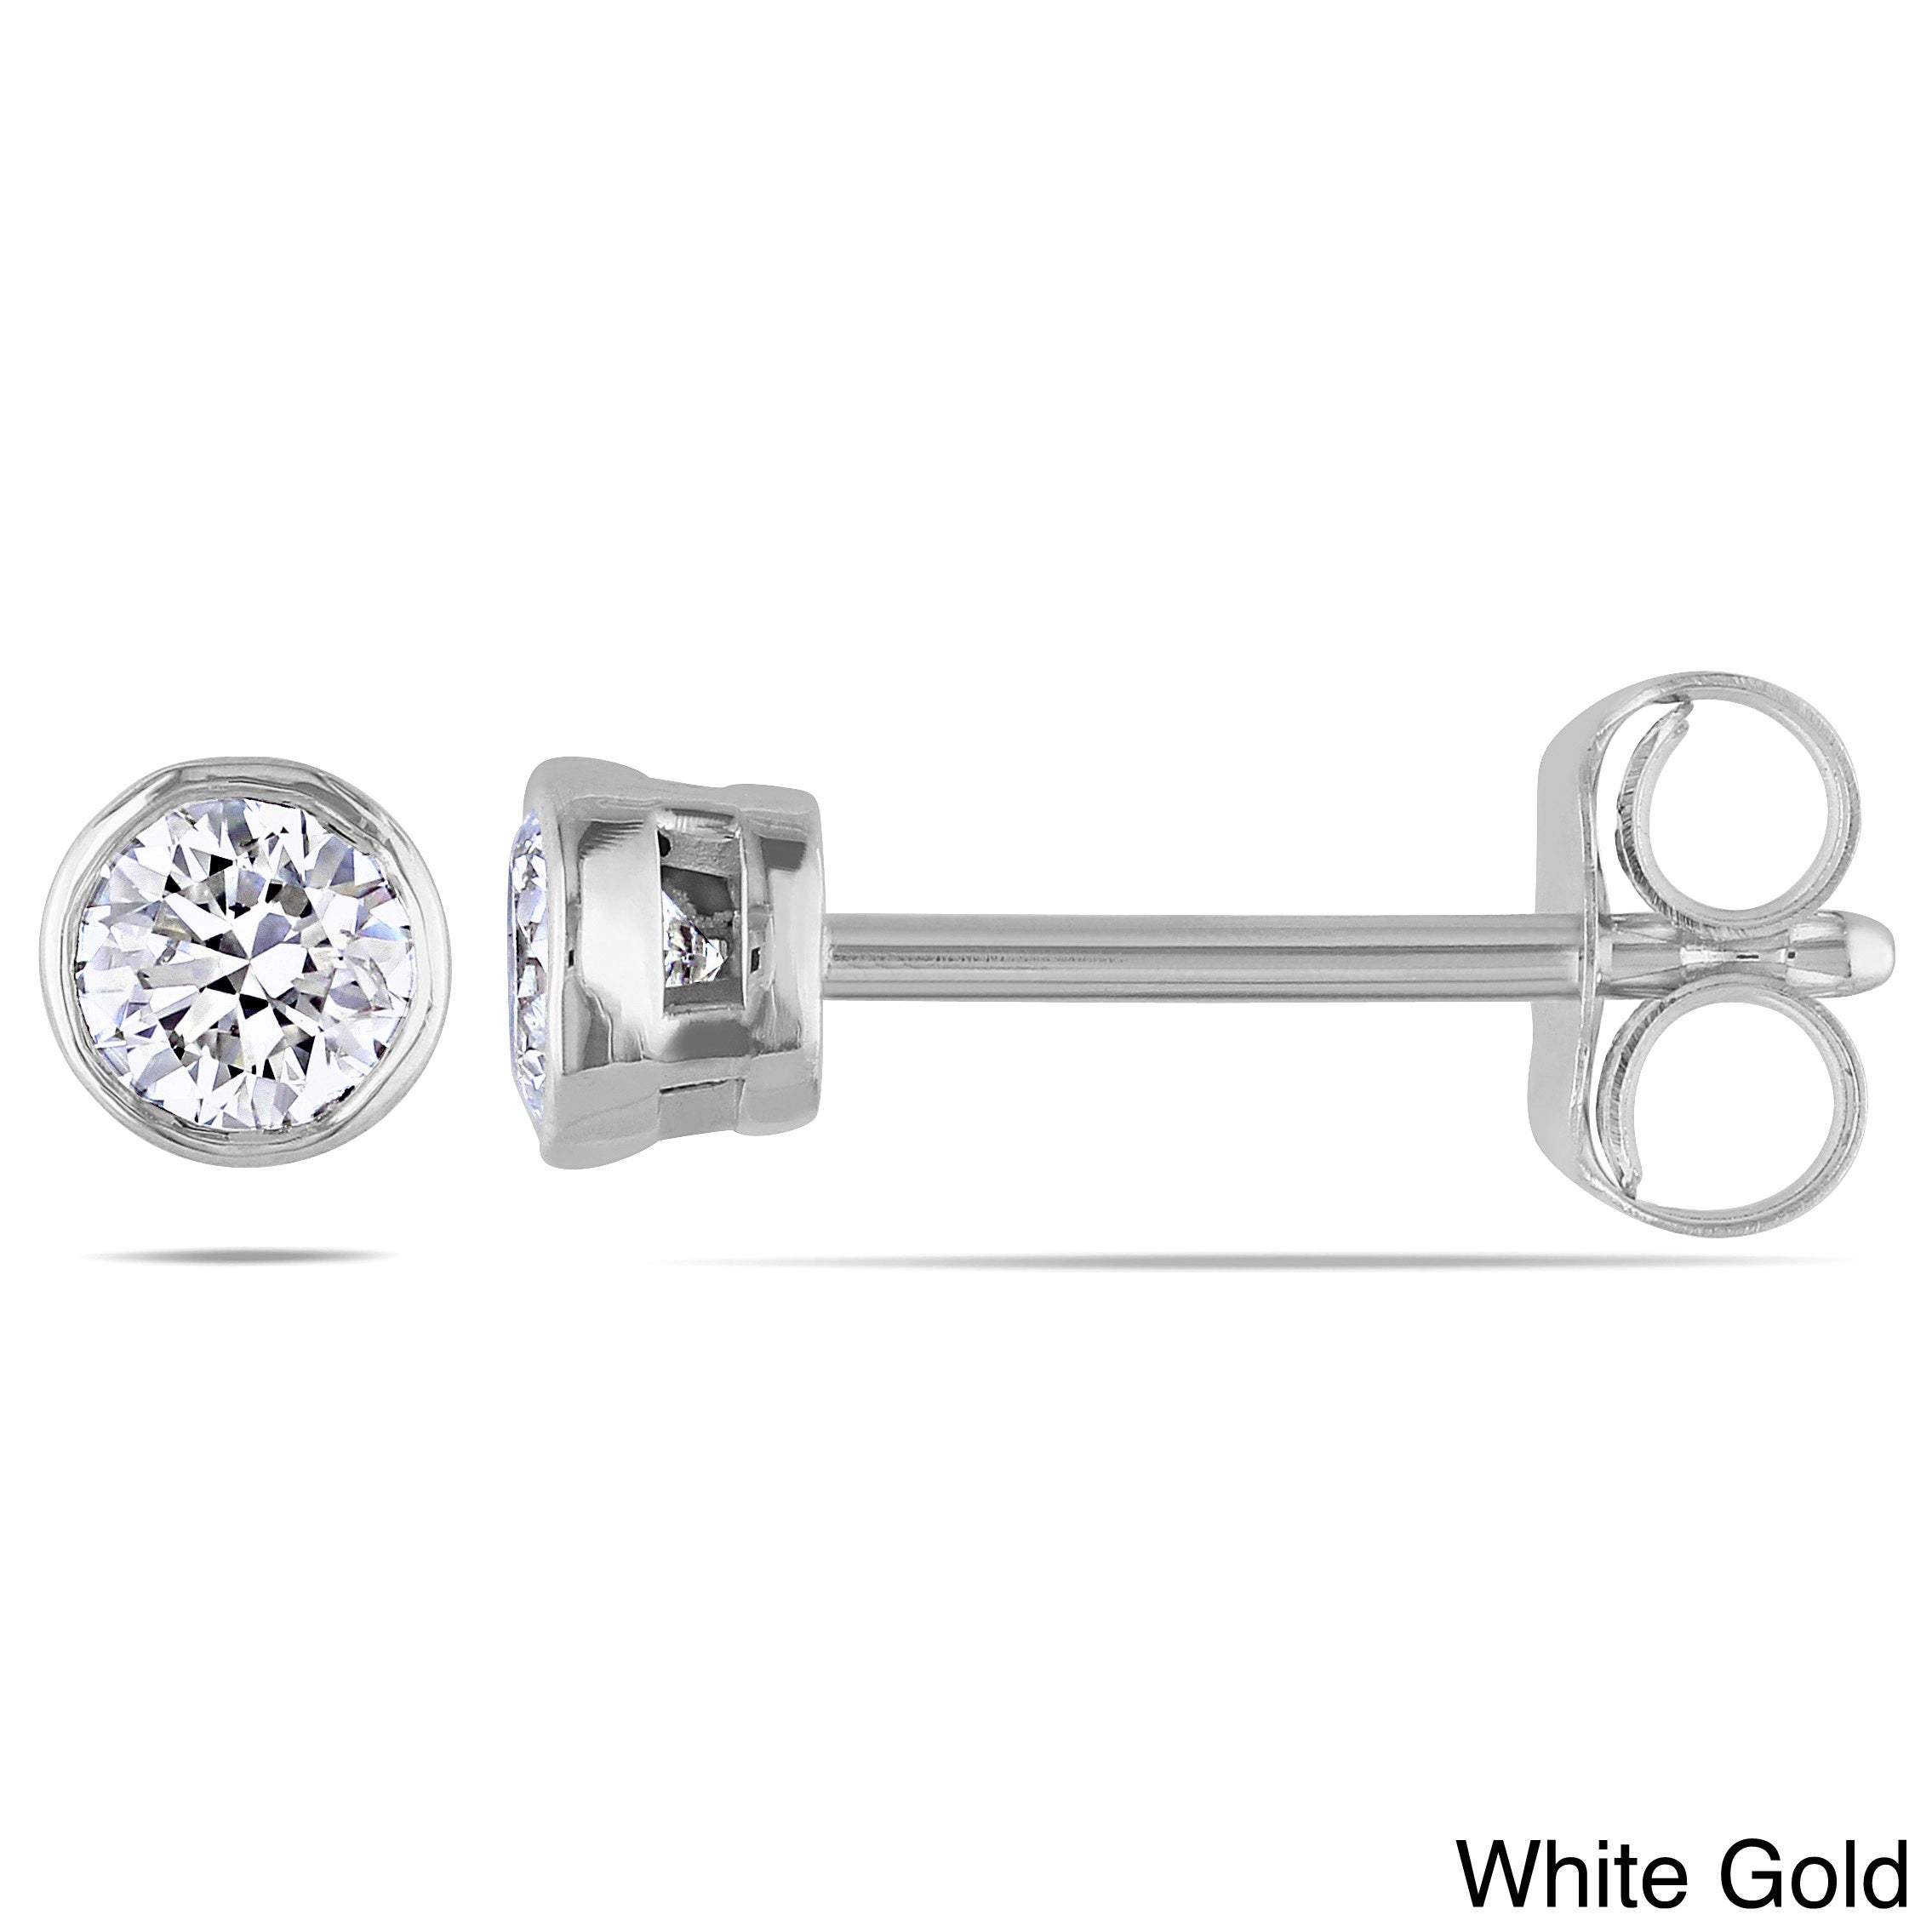 e057ed532 Shop Miadora 14k Gold 1/4ct TDW Bezel-set Diamond Solitaire Stud Earrings -  Free Shipping Today - Overstock - 6613627